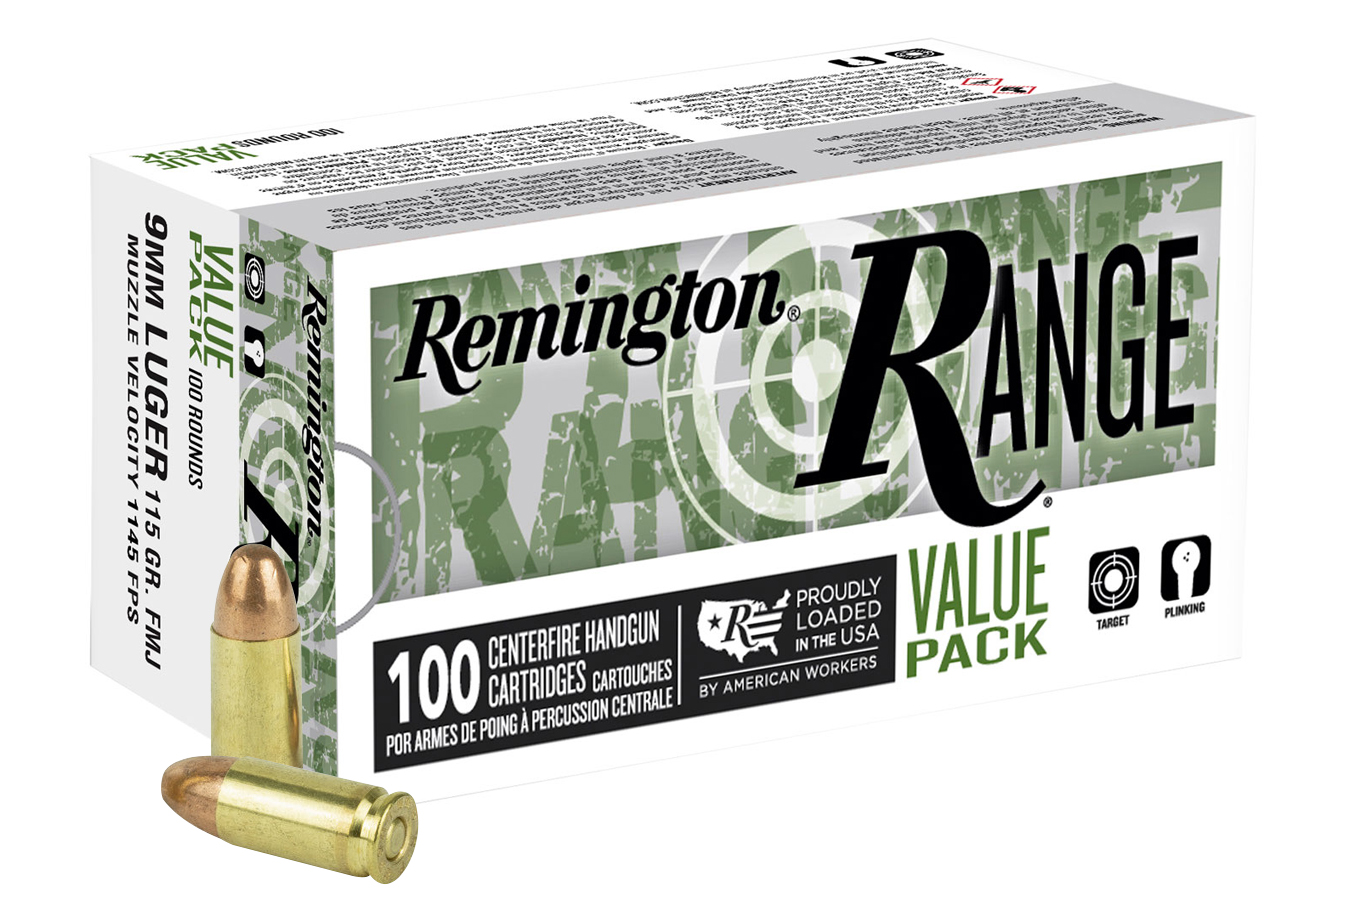 9MM 115 GR FMJ RANGE VALUE PACK 100/BOX